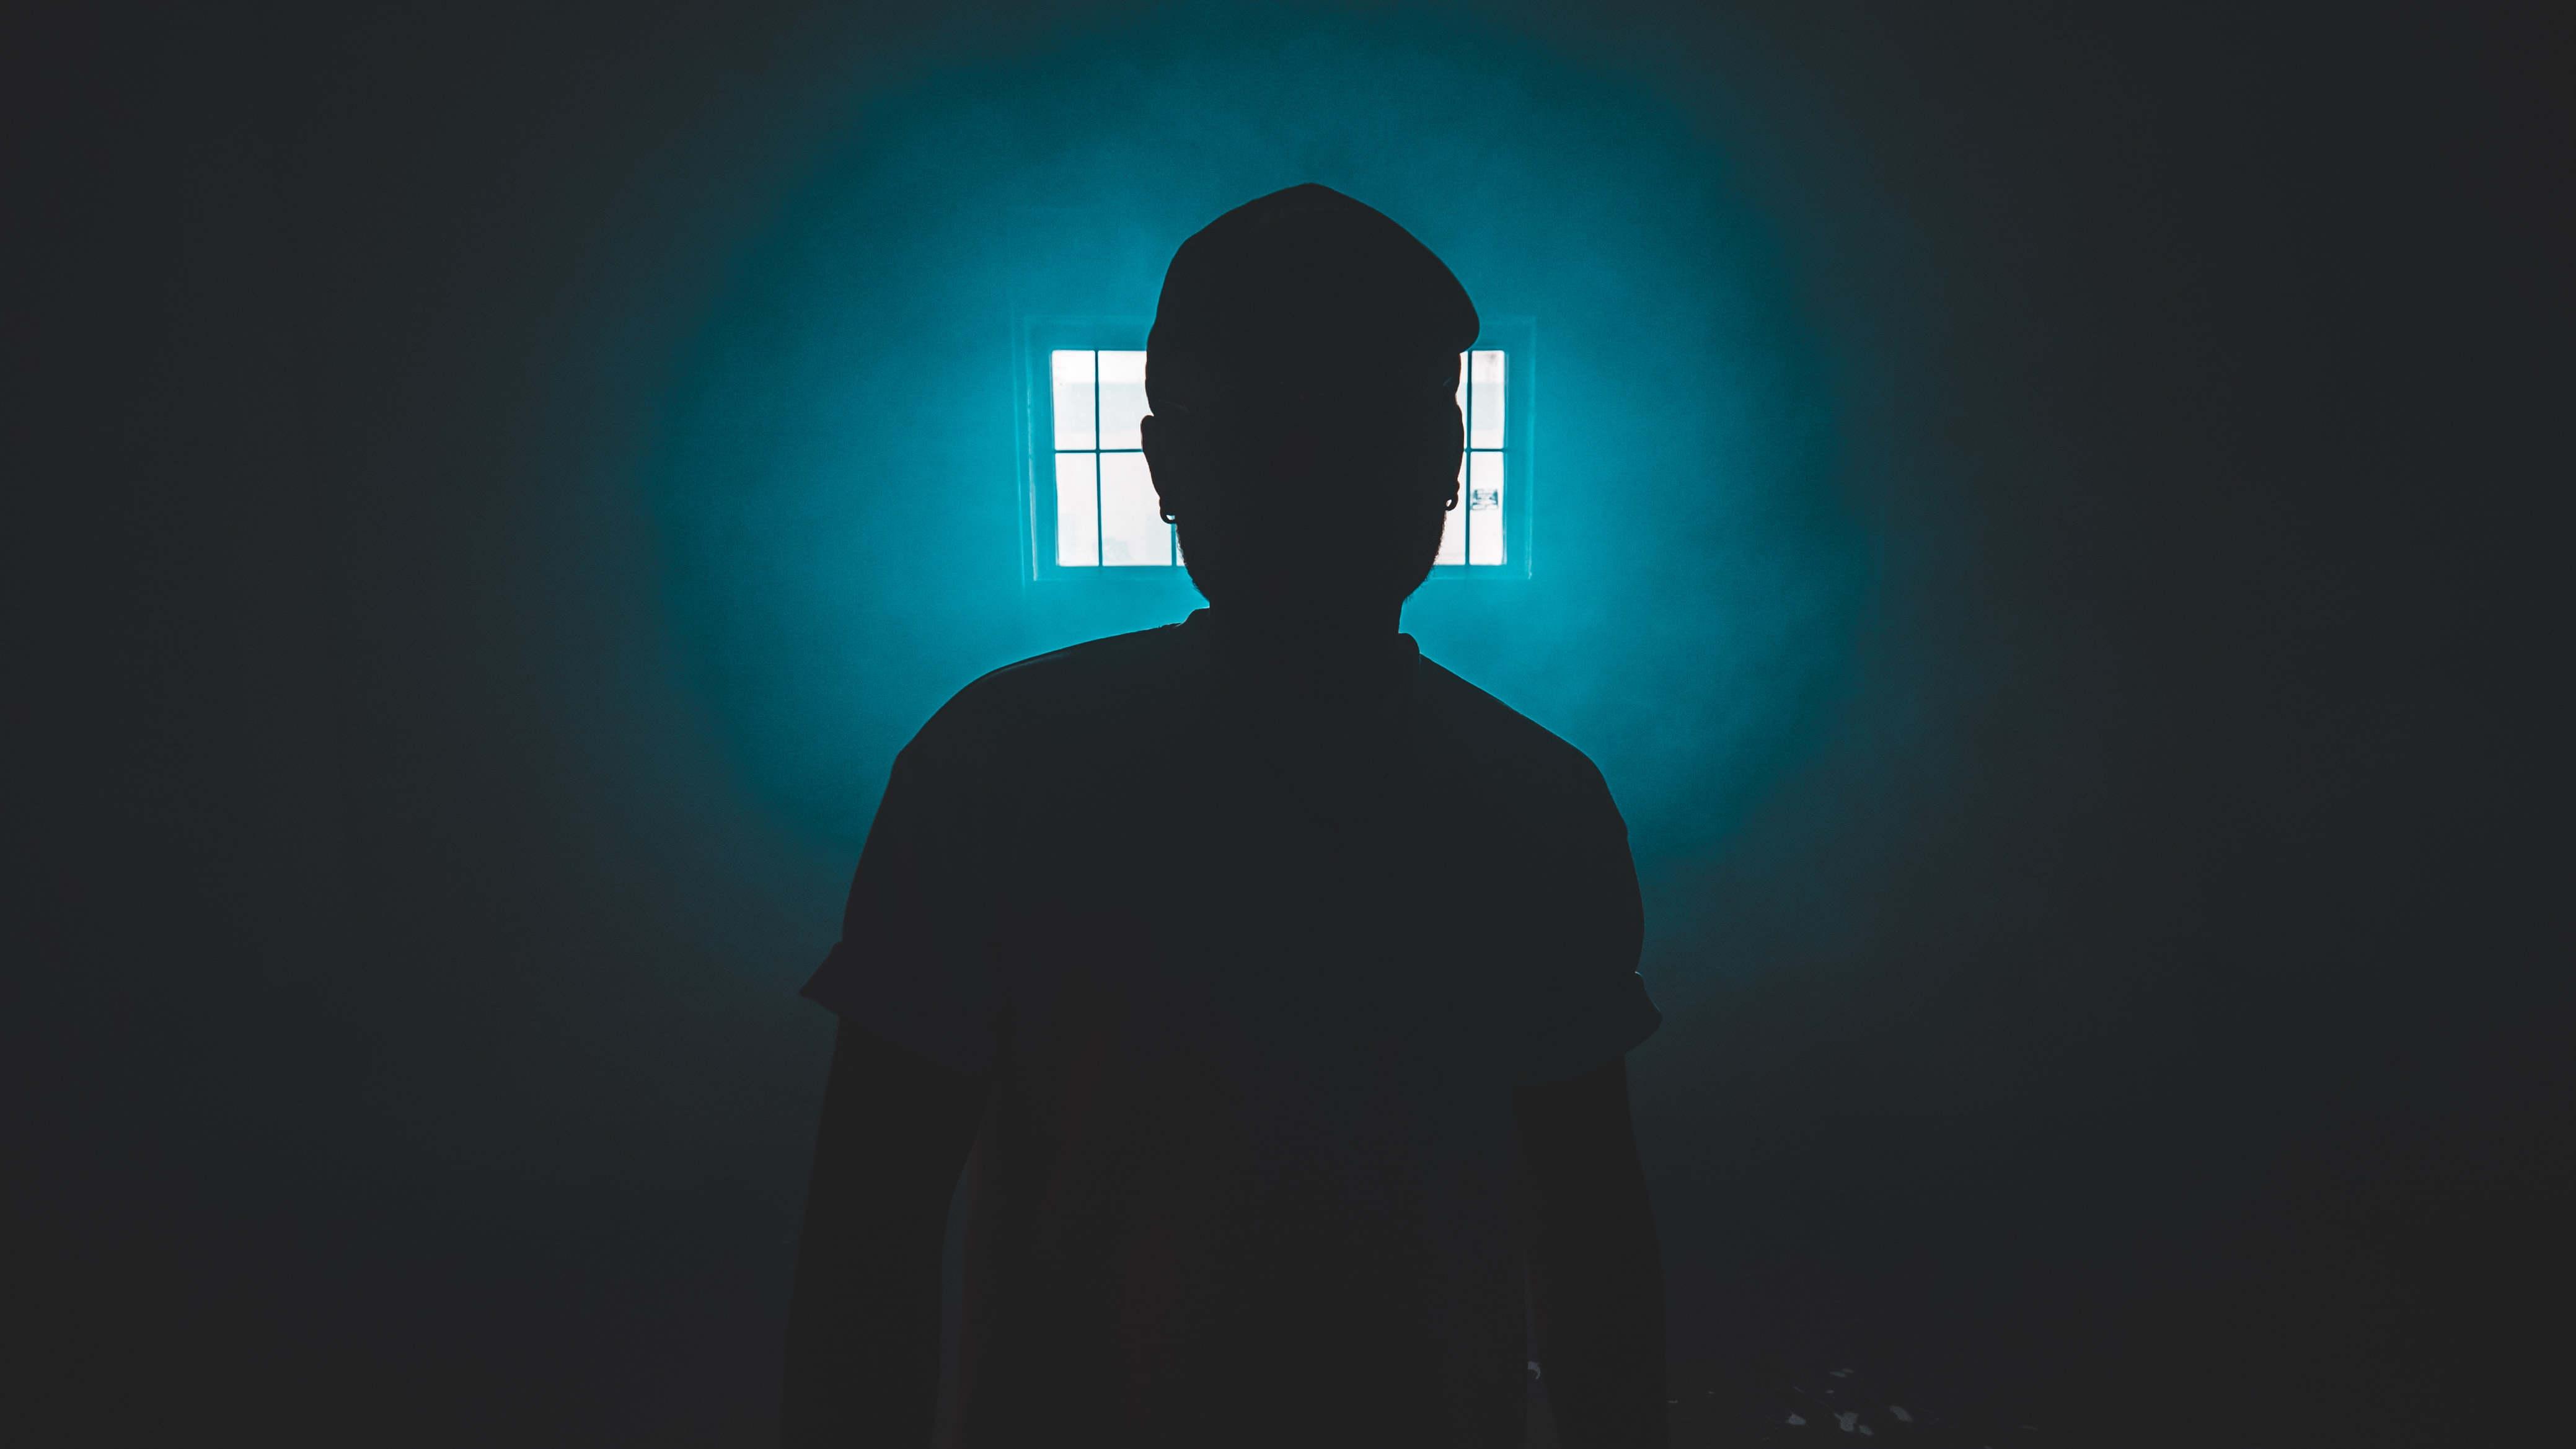 silhouette of standing person